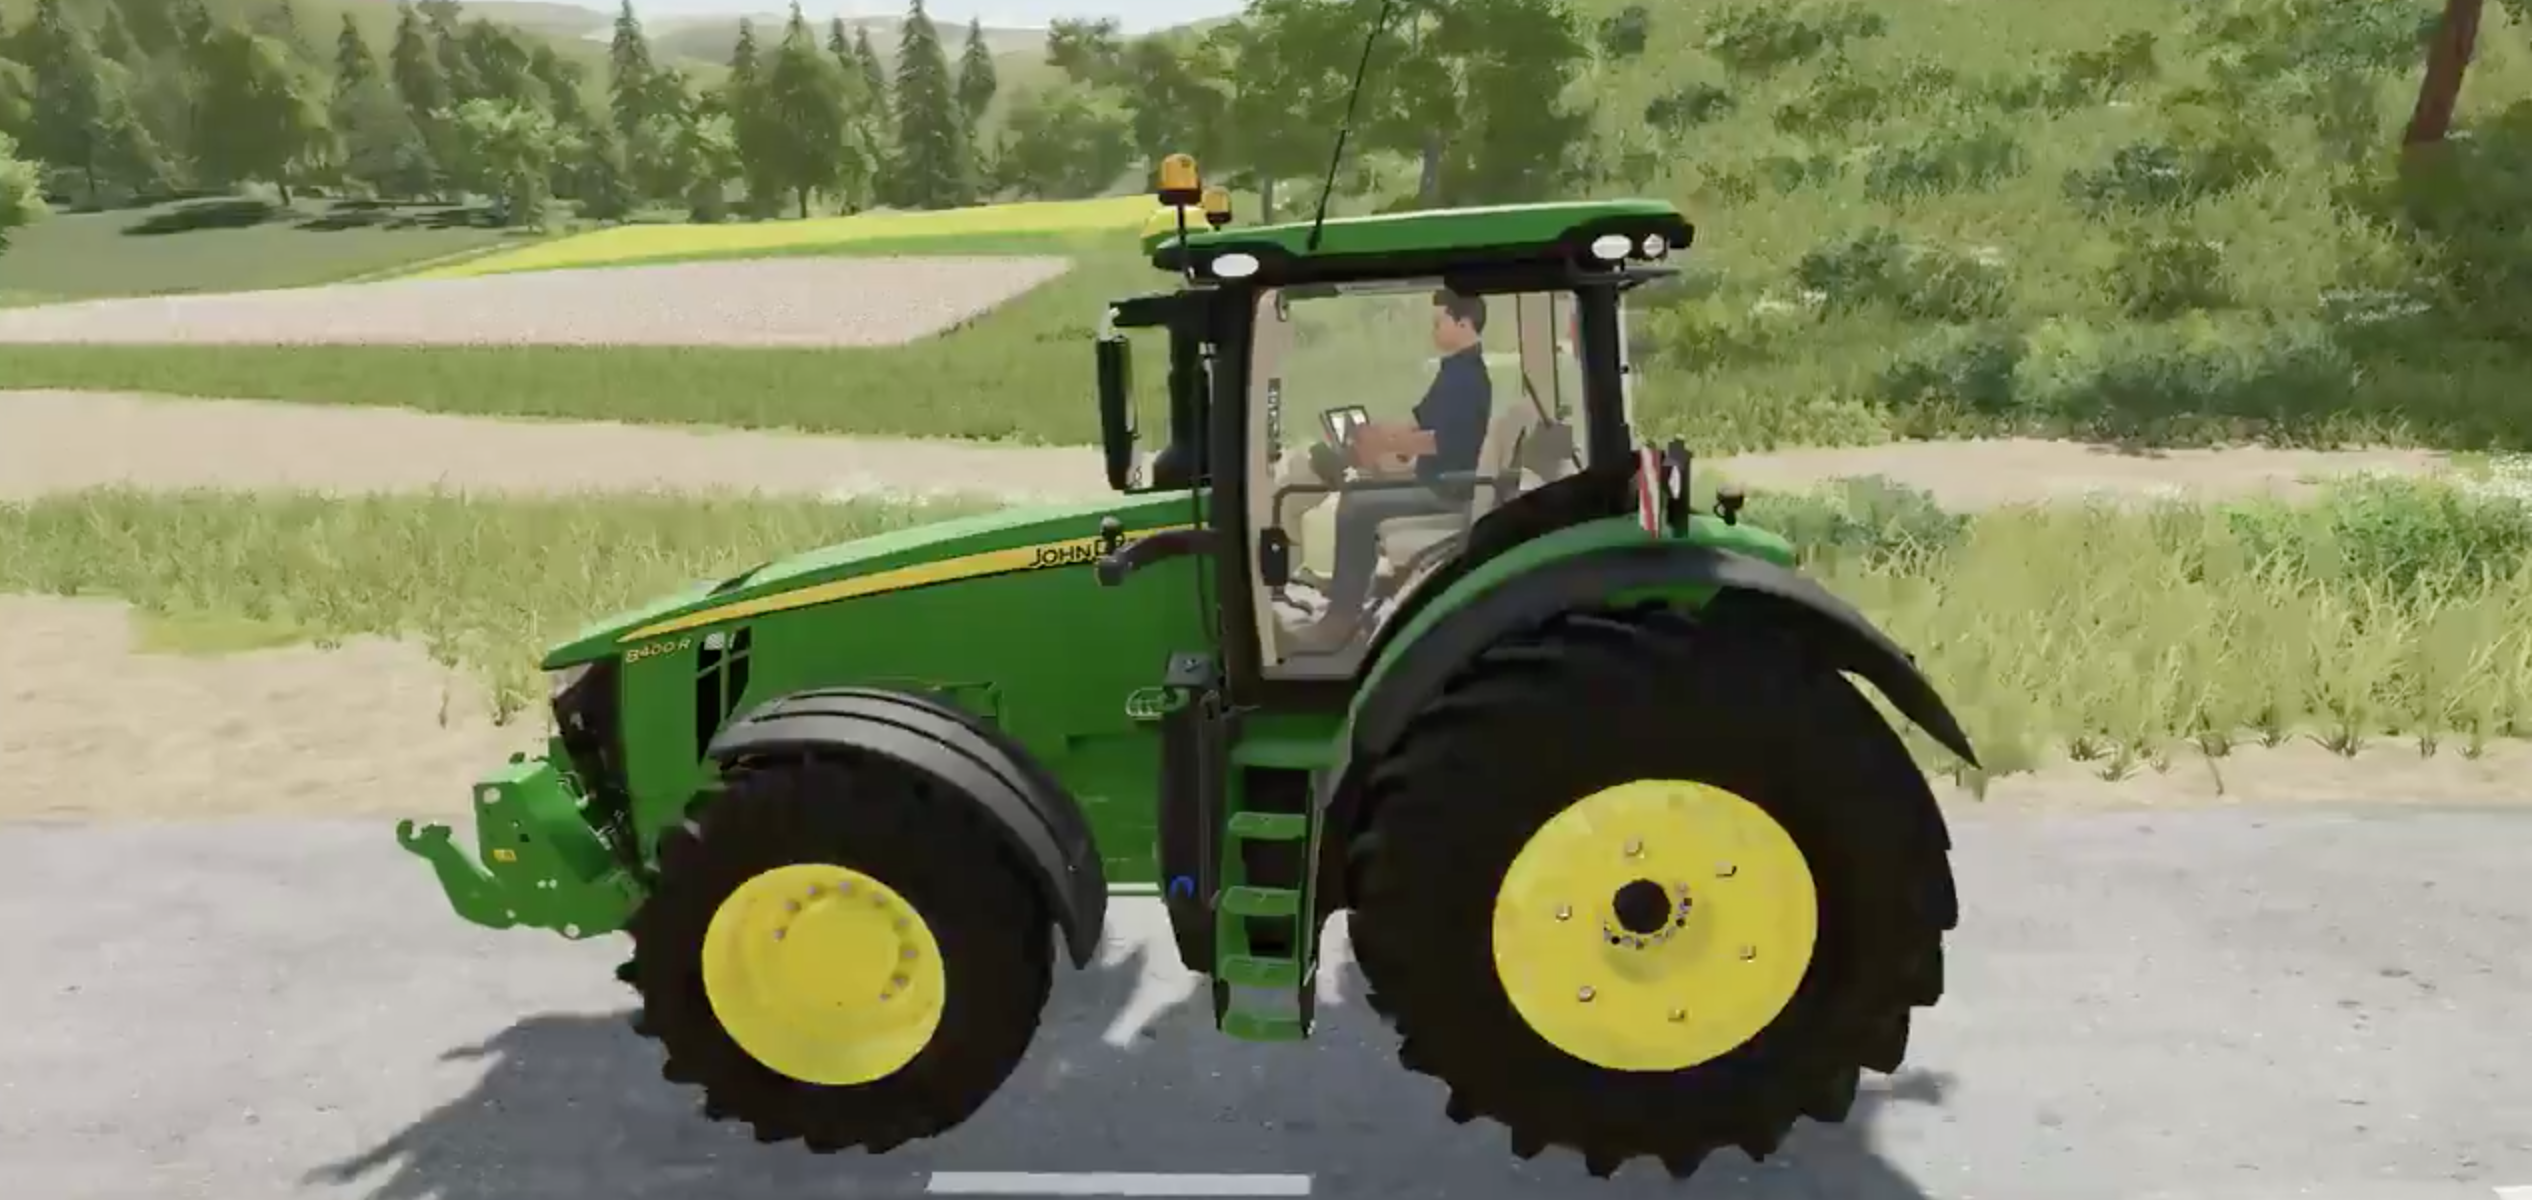 John Deere 8400R Tractor in Farming Simulator 19 game